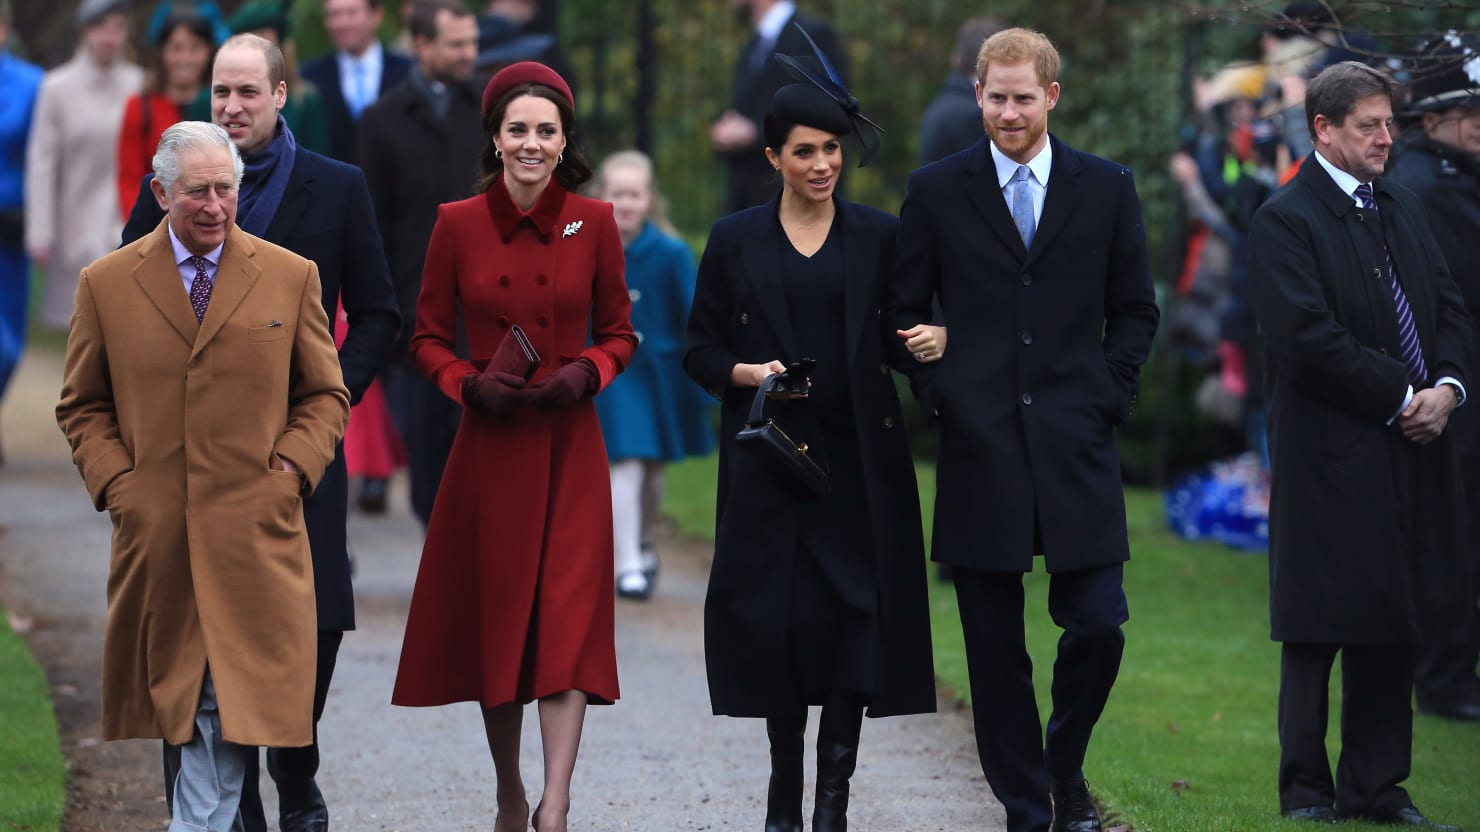 Prince Charles 'Keeps Door Open' for 'Dramatic Return' of Prince Harry and Meghan Markle